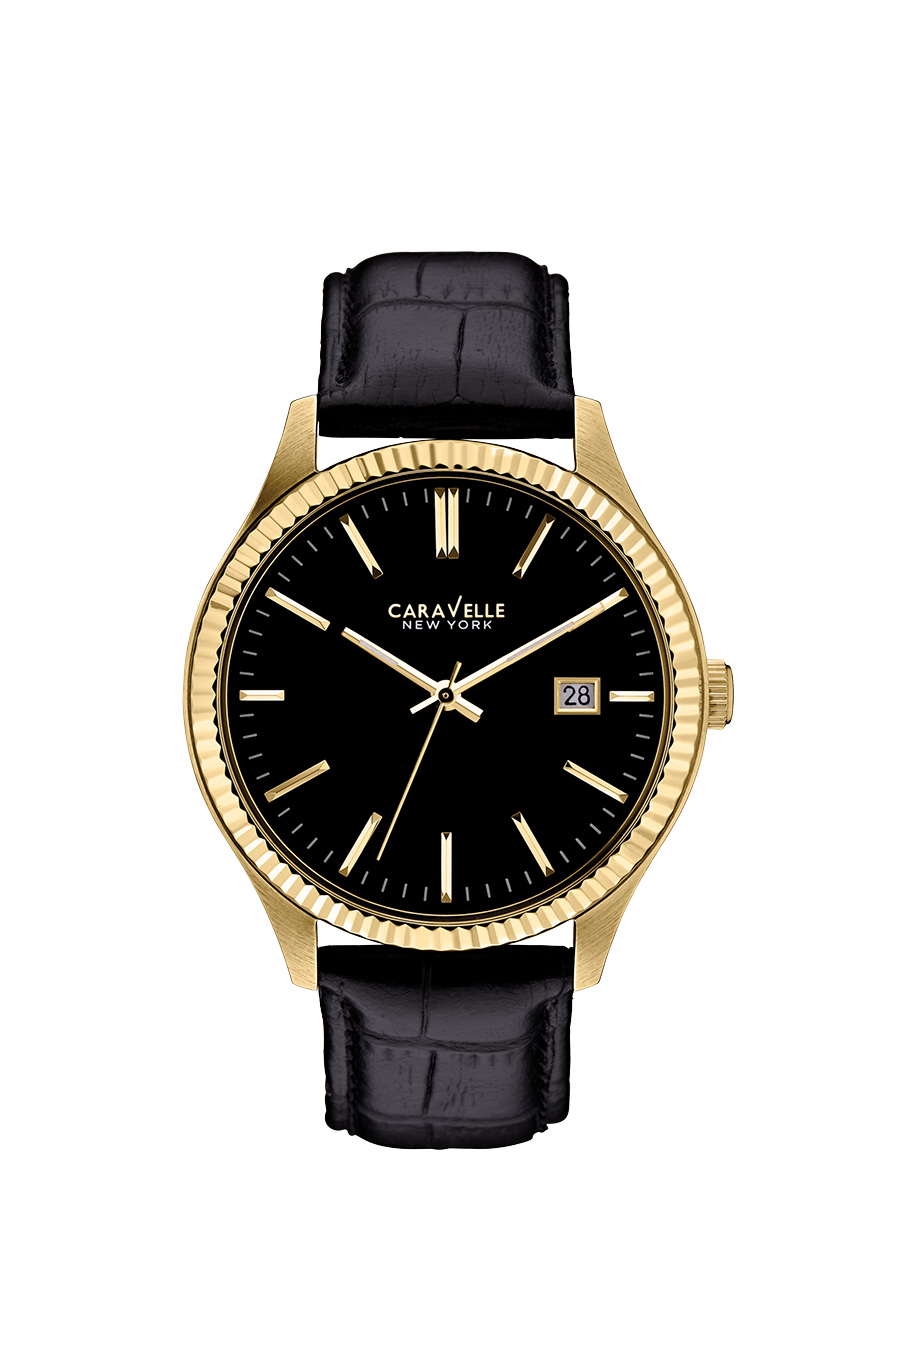 New York watch for men - Yellow gold-tone stainless steel case & Black leather strap.